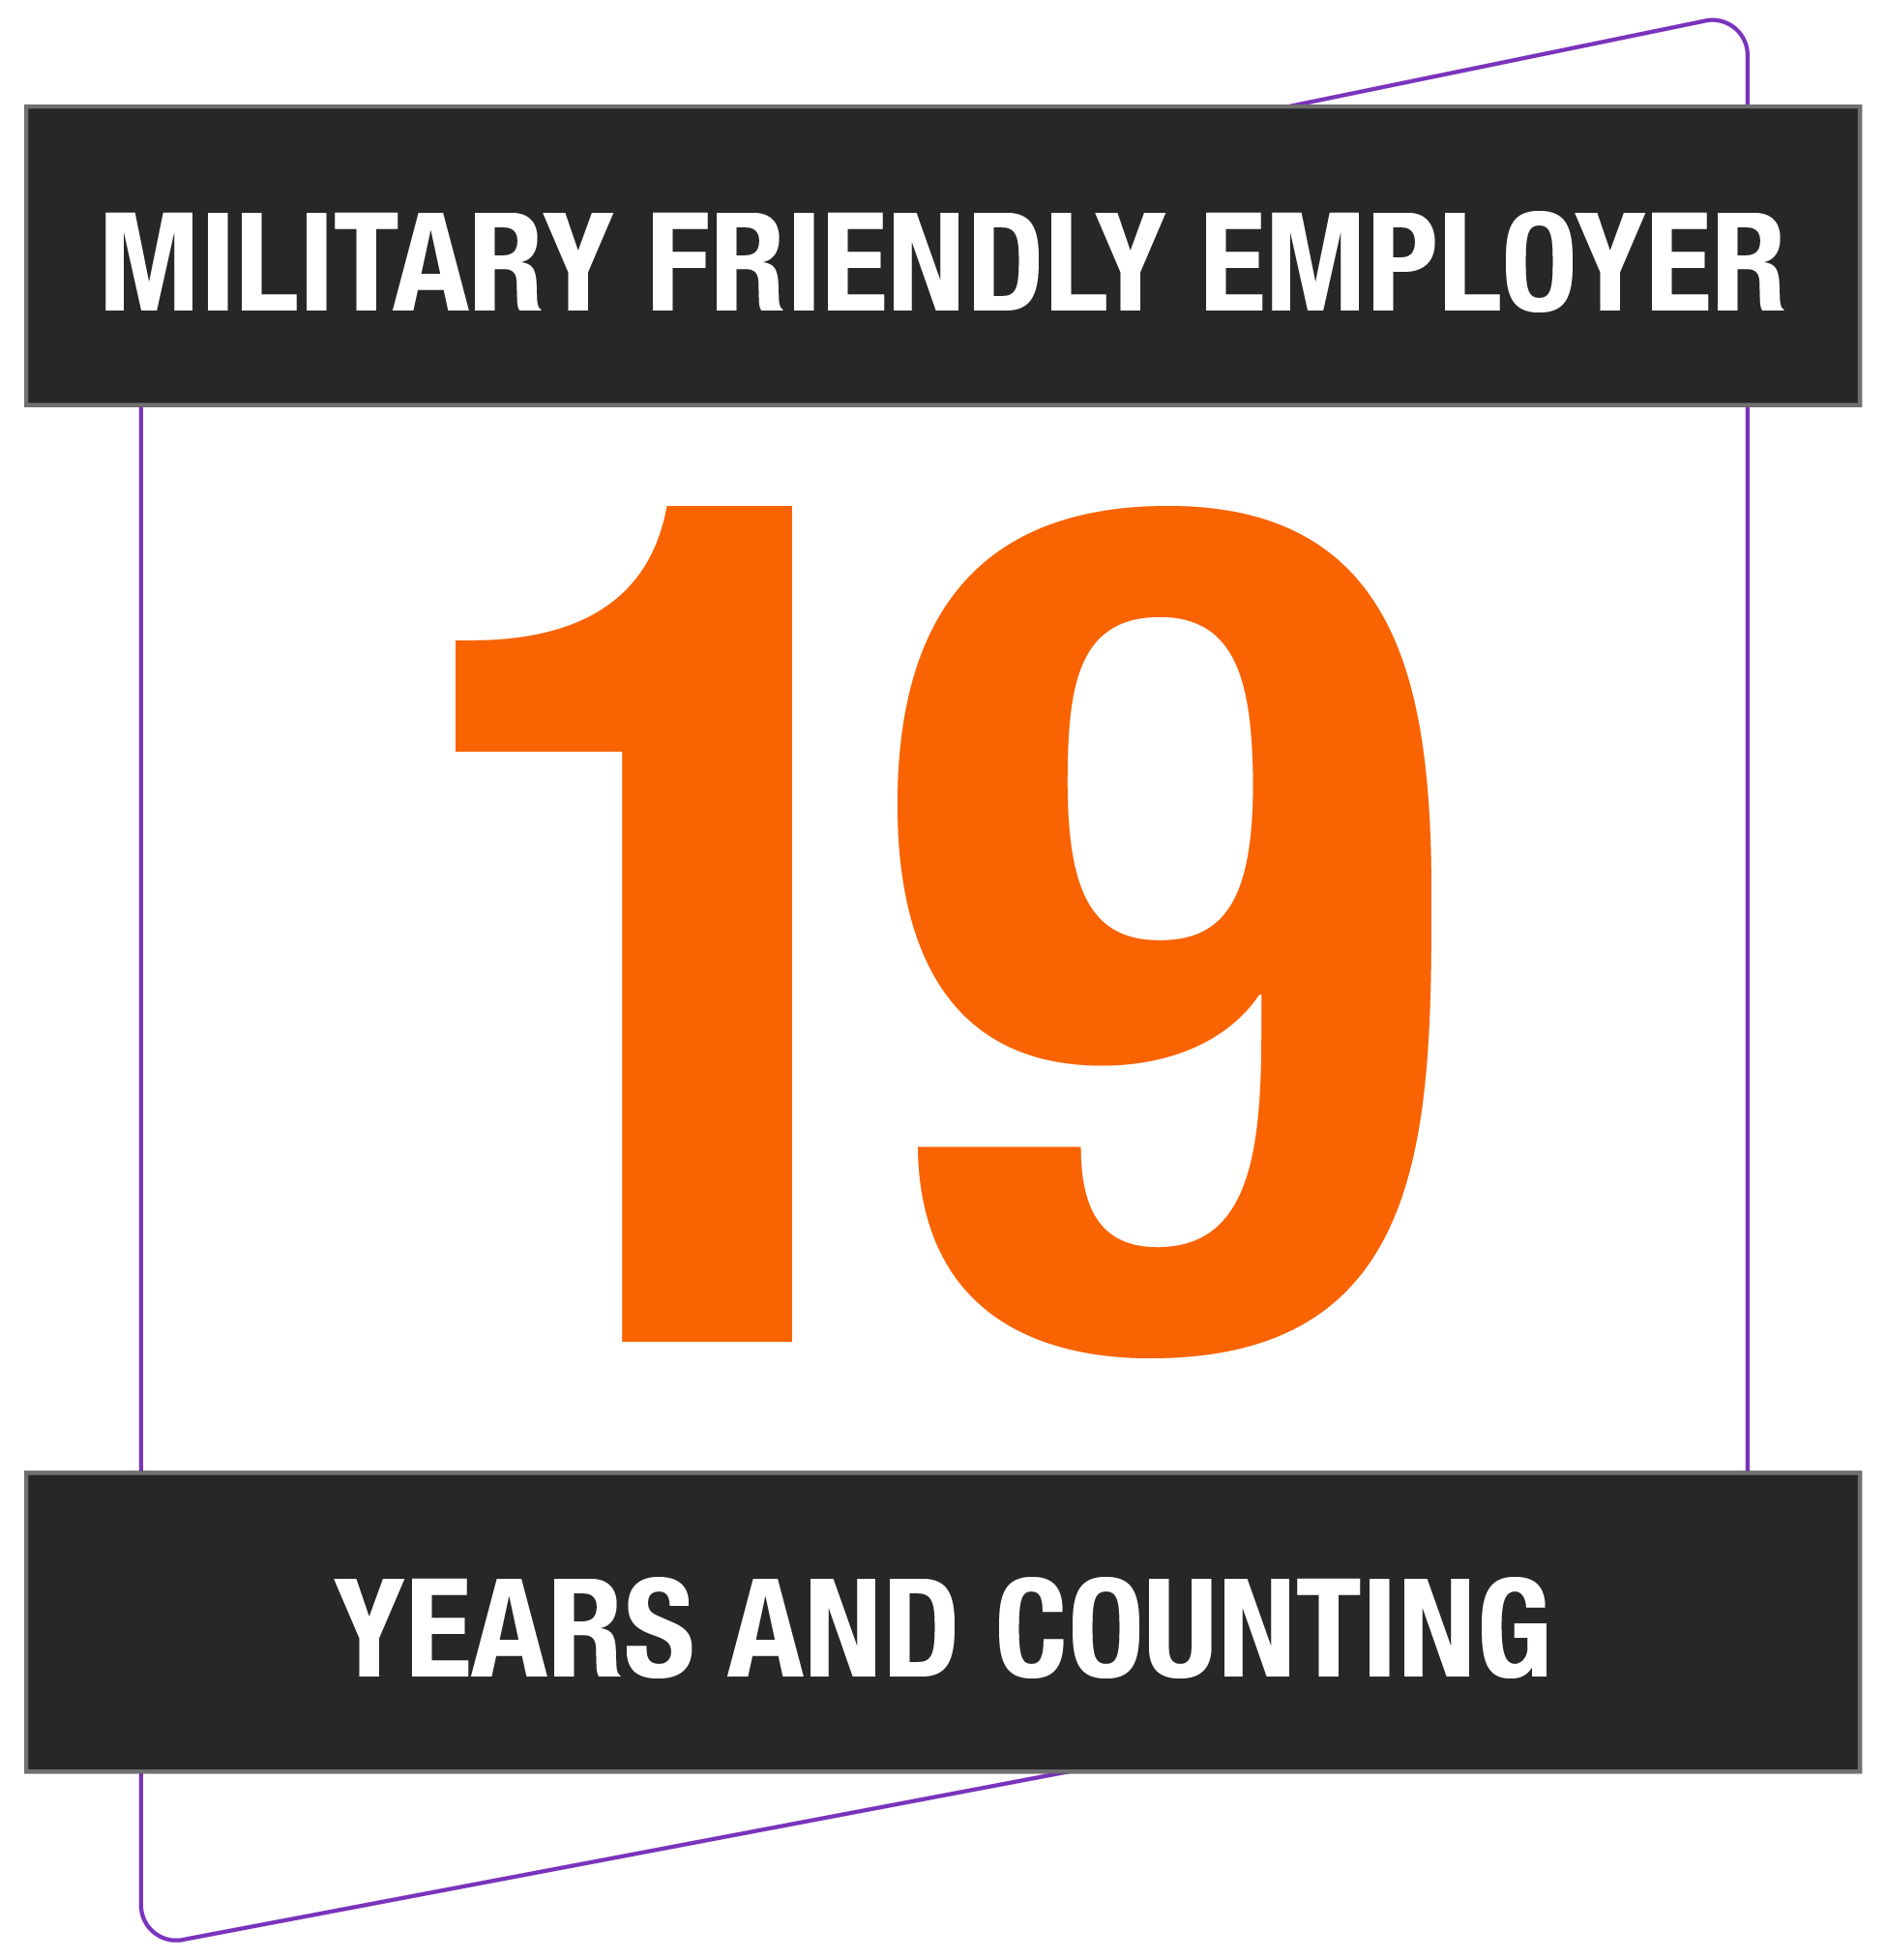 Military friendly employer 19 years and counting